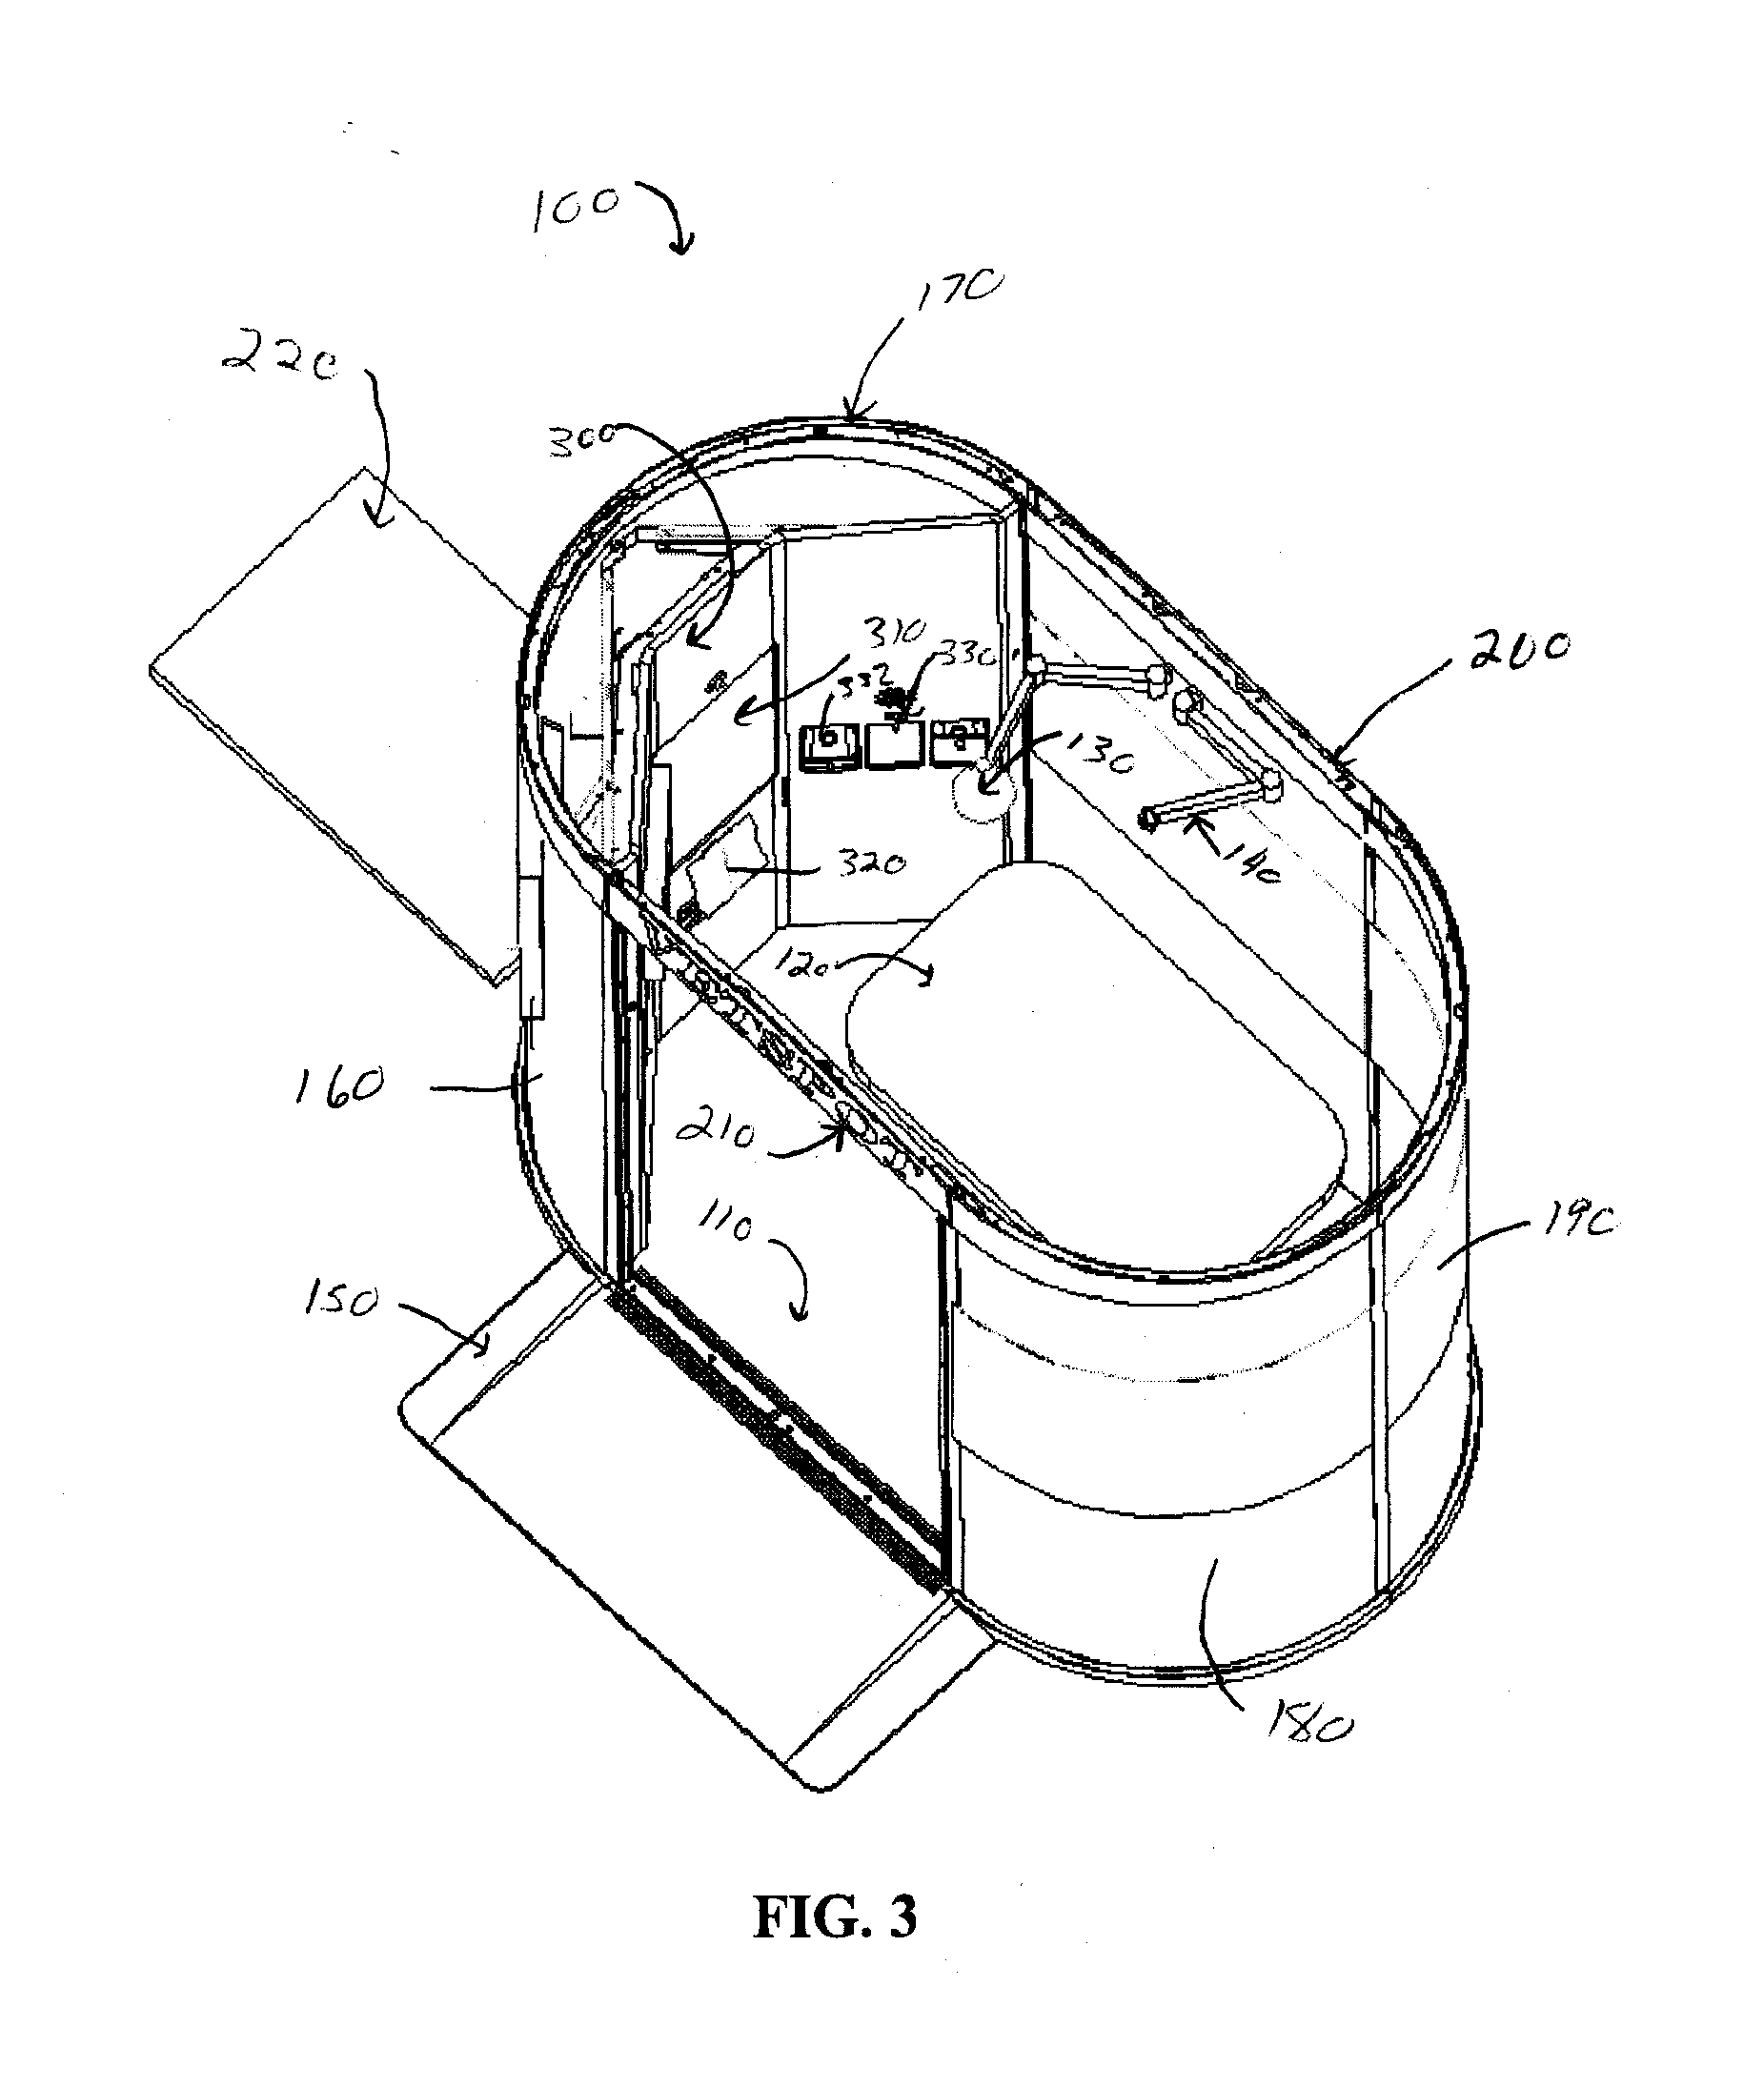 Patent us20140052463 veterinary kiosk with integrated veterinary